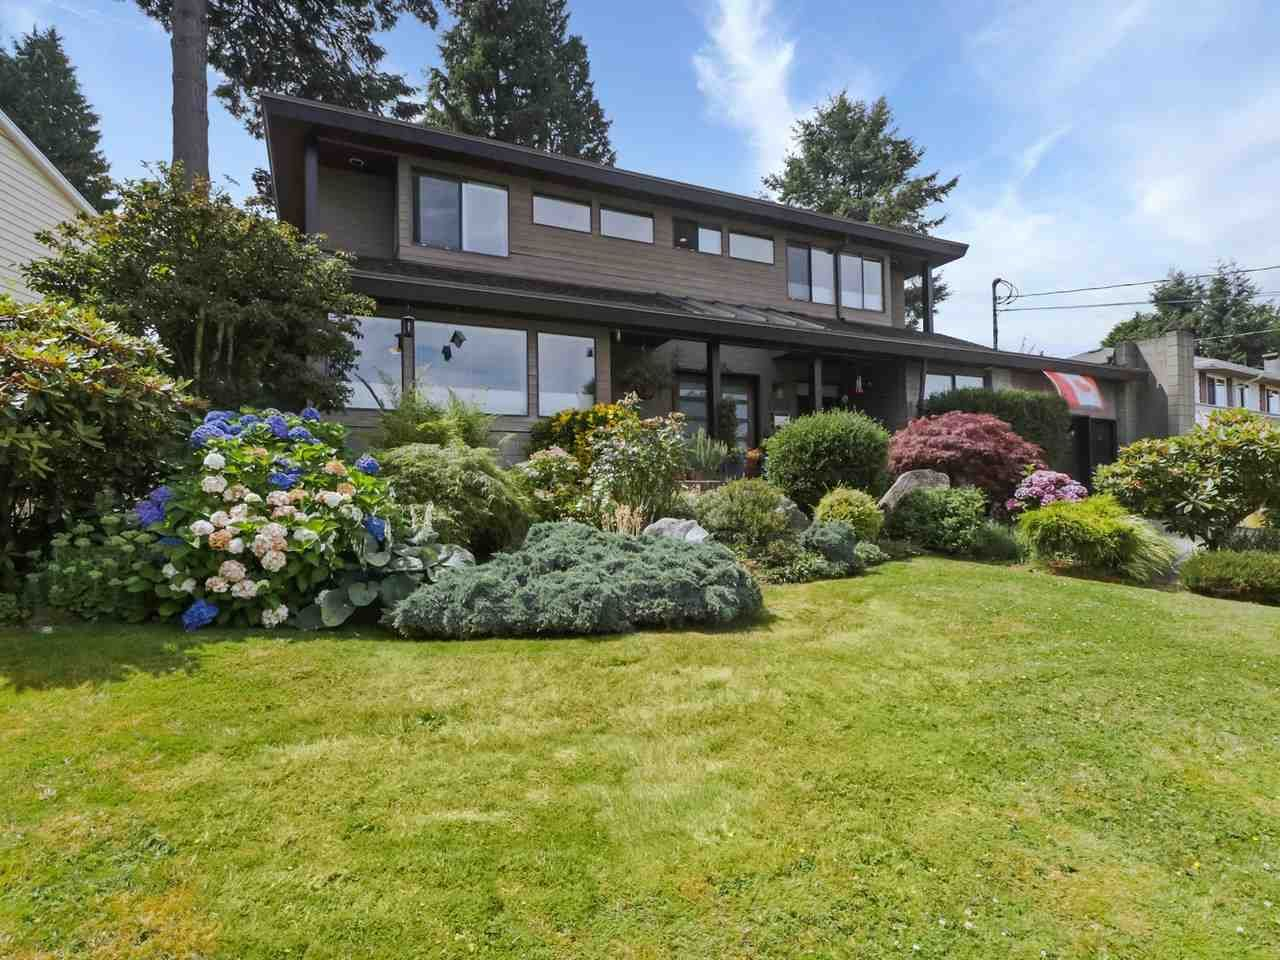 Main Photo: 1059 WALALEE Drive in Delta: English Bluff House for sale (Tsawwassen)  : MLS®# R2480935